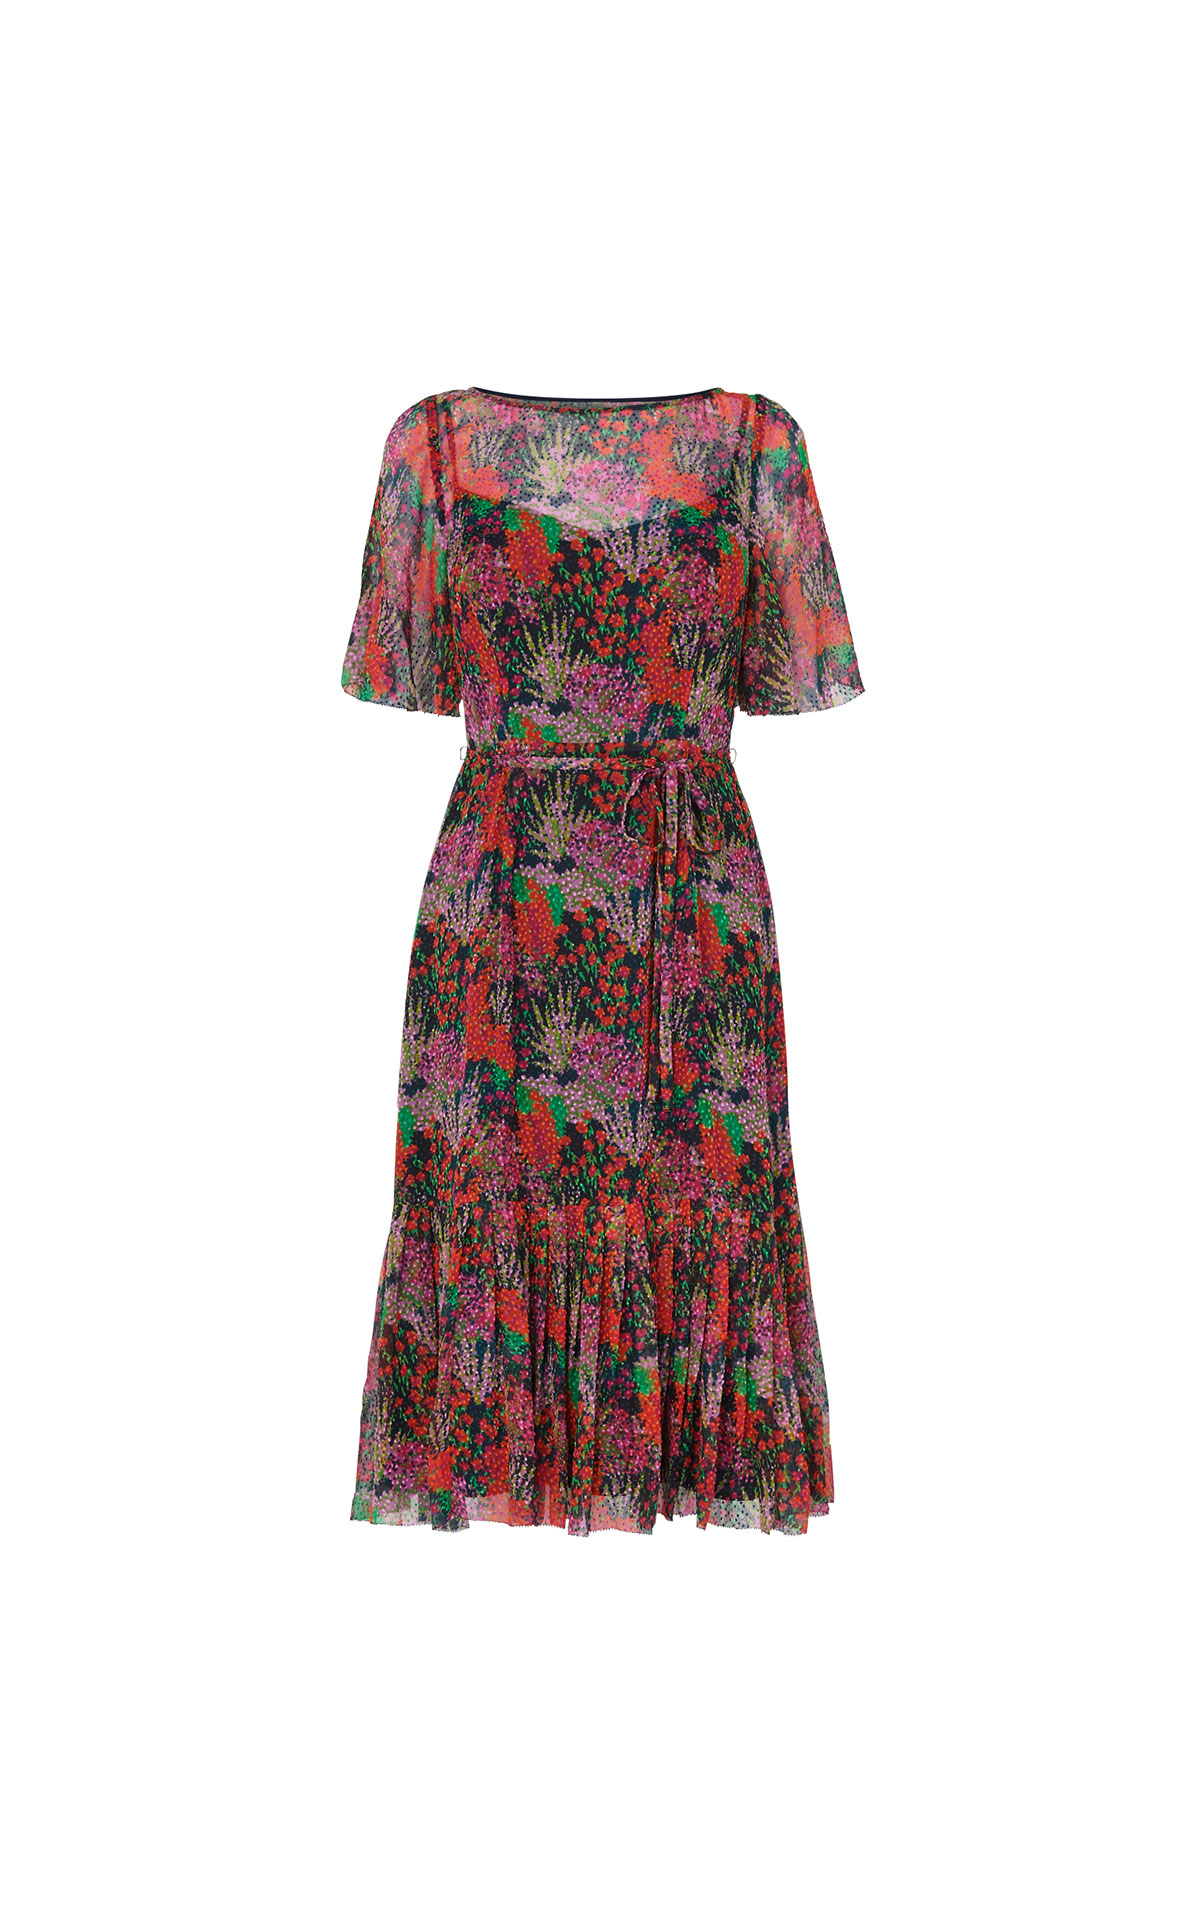 L.K. Bennett Boe dress from Bicester Village